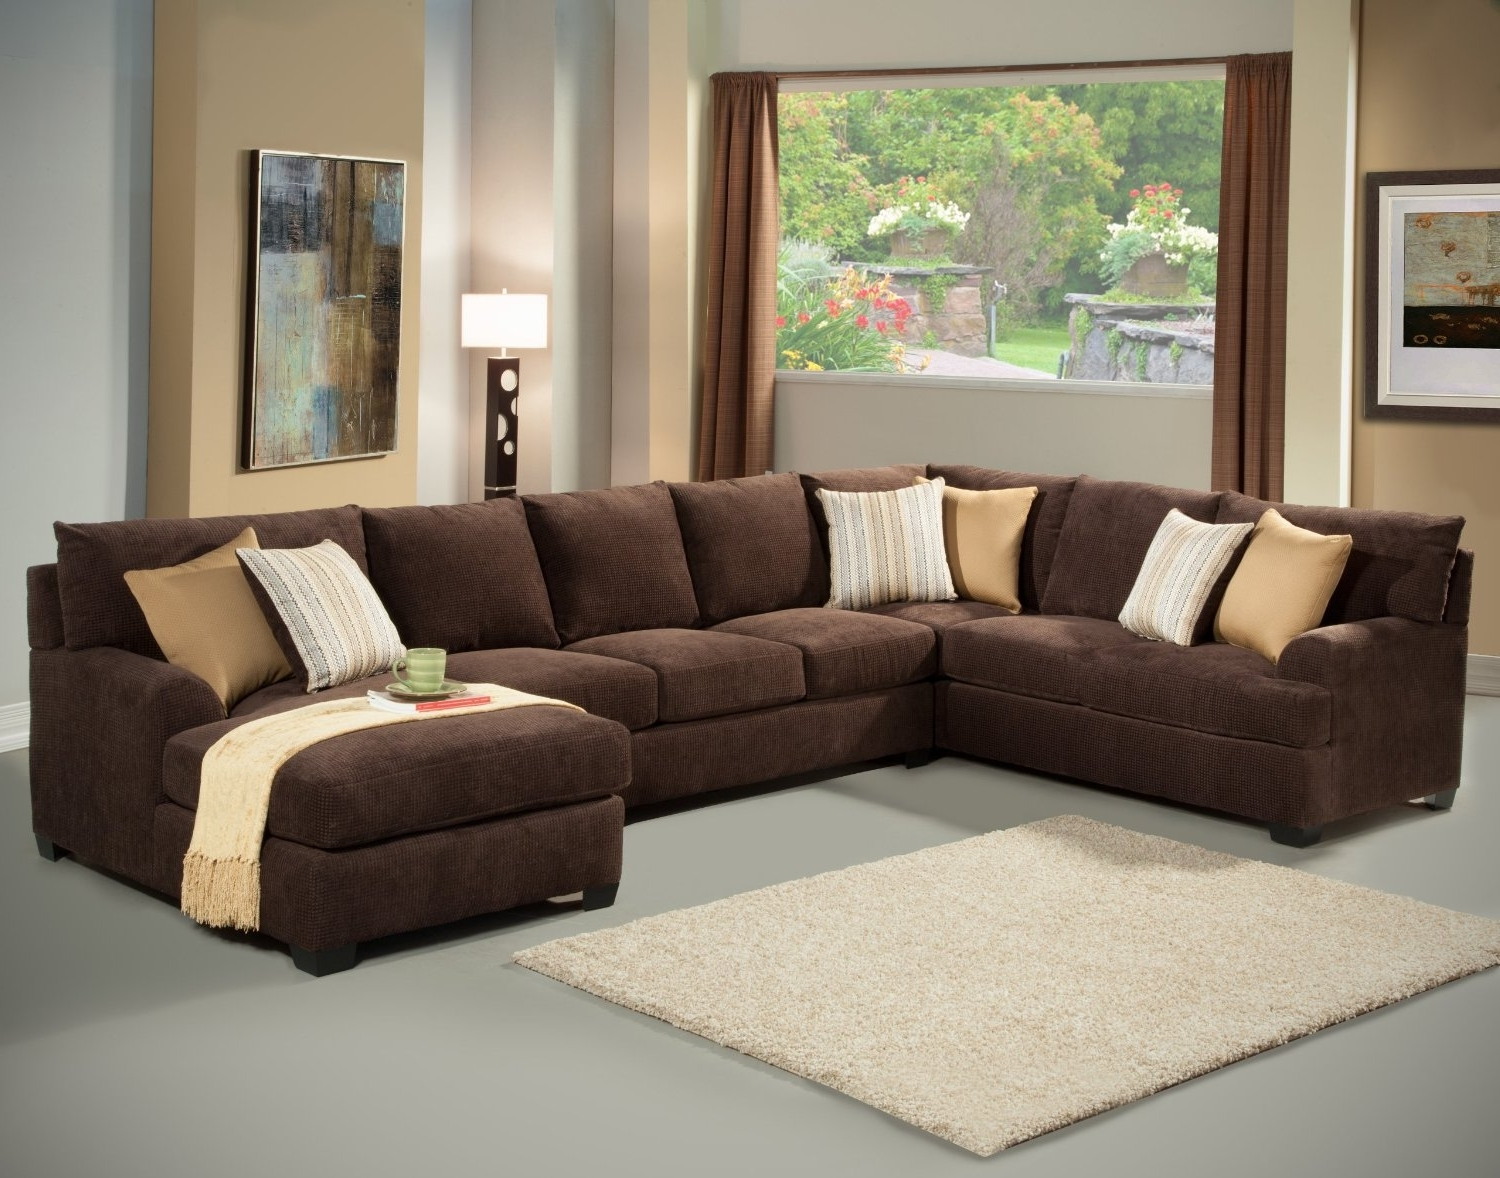 Houston Tx Sectional Sofas Inside Fashionable Awesome Large Sectional Sofa With Chaise 60 In Cheap Sectional (View 5 of 15)